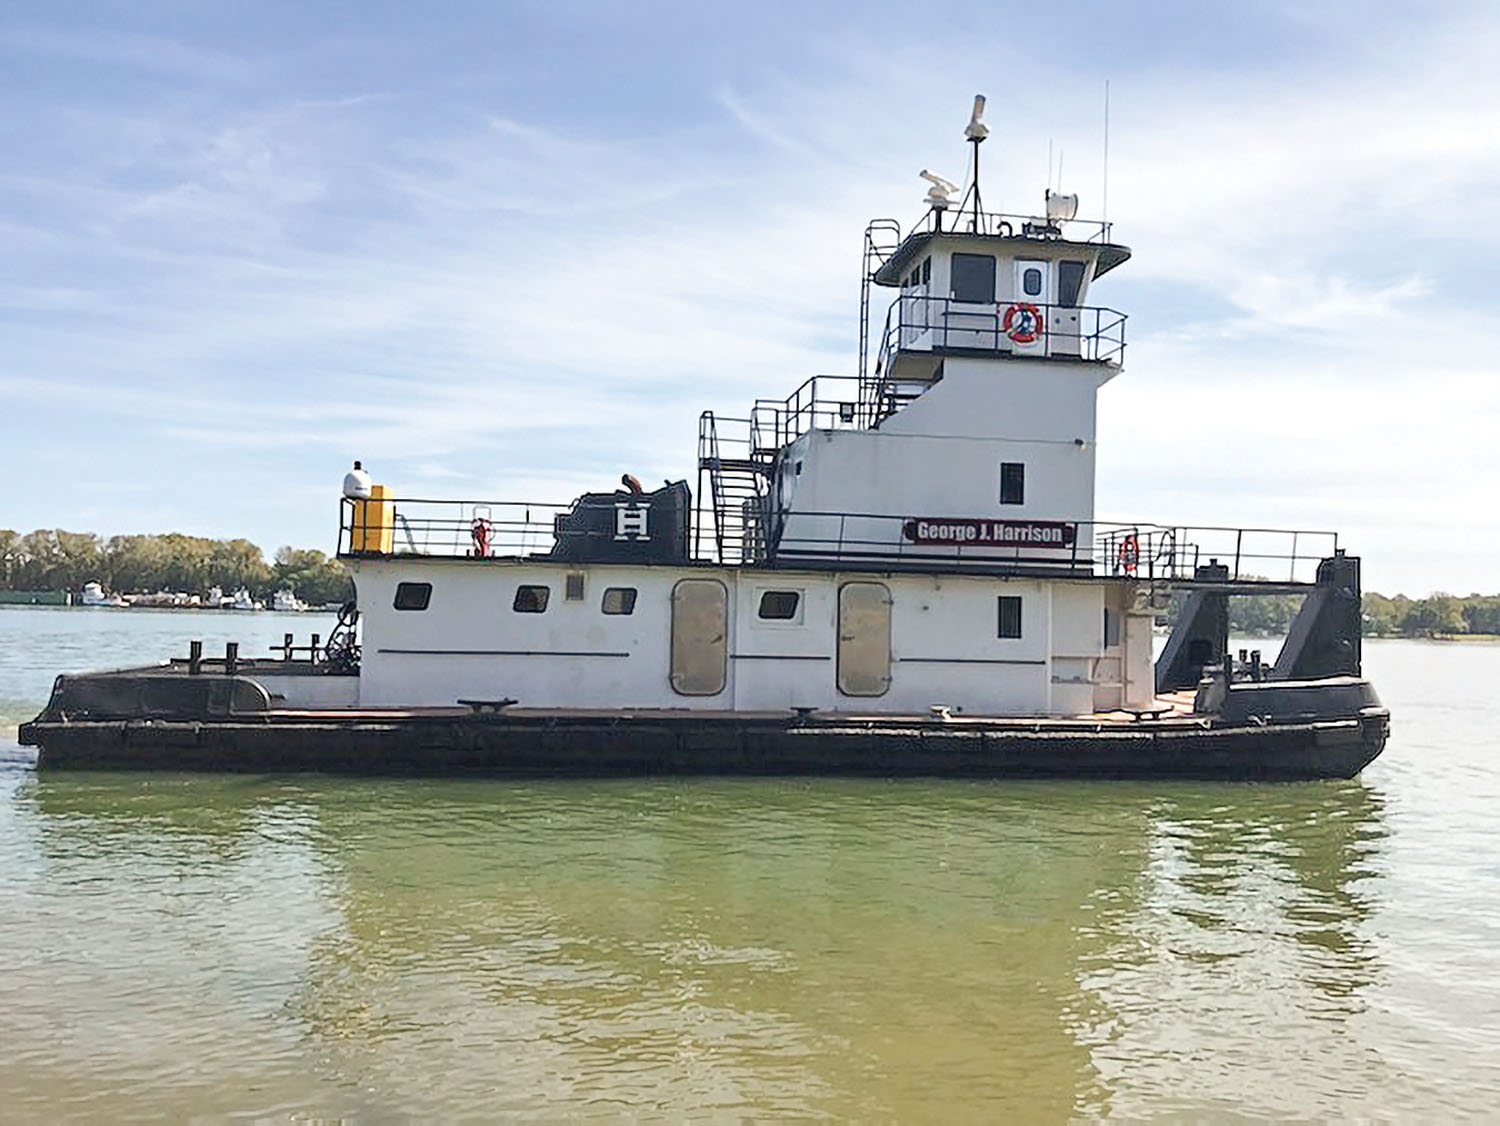 Bellaire Harbor Service expects to accept delivery soon of the mv. George J. Harrison, named after the 16-year-old son of Bob Harrison, president and owner. (Photo courtesy of Bellaire Harbor Service)